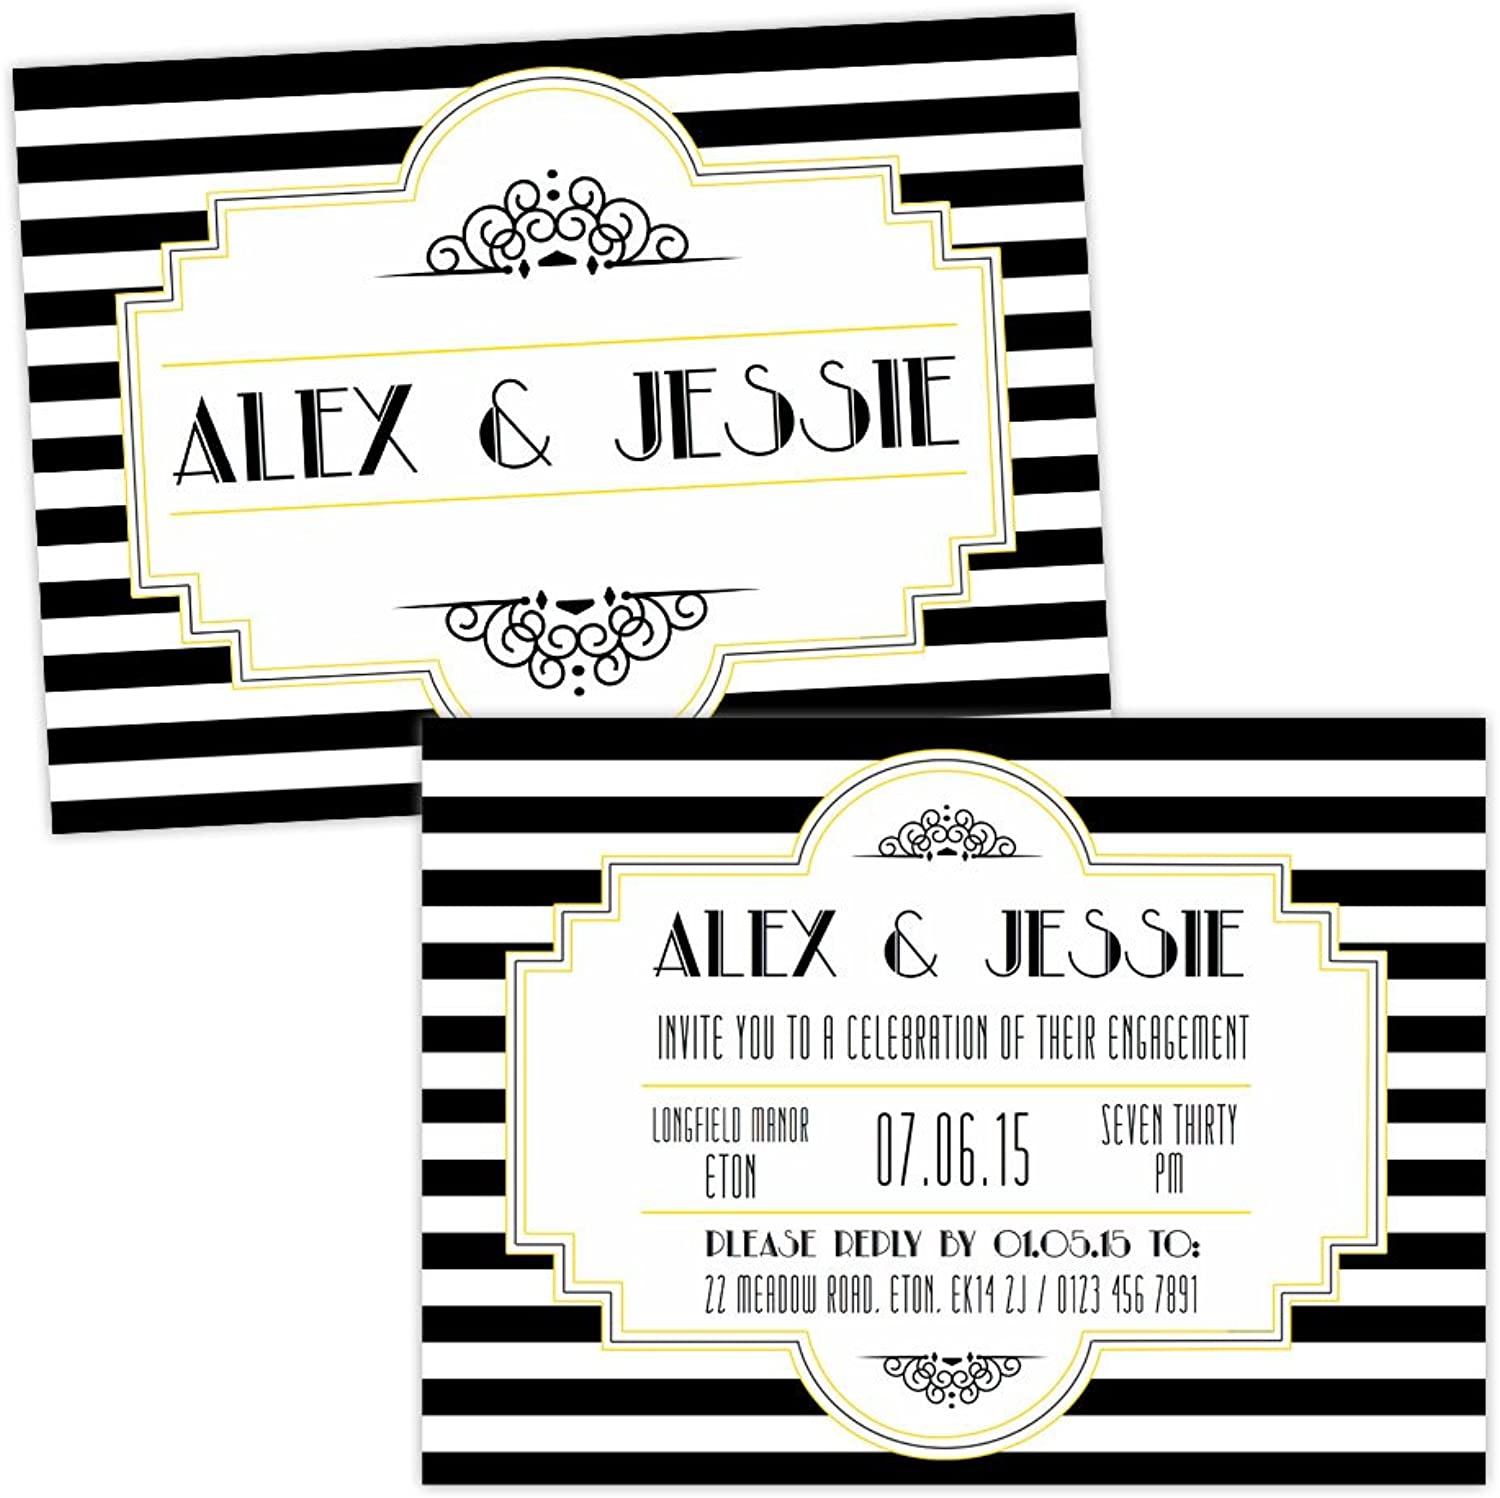 Made by Mika Personalised engagement party invitations BLACK WHITE 1920'S ART DECO FREE DRAFT & FREE ENVELOPES (40, A6 folded Pearl or Textured card)